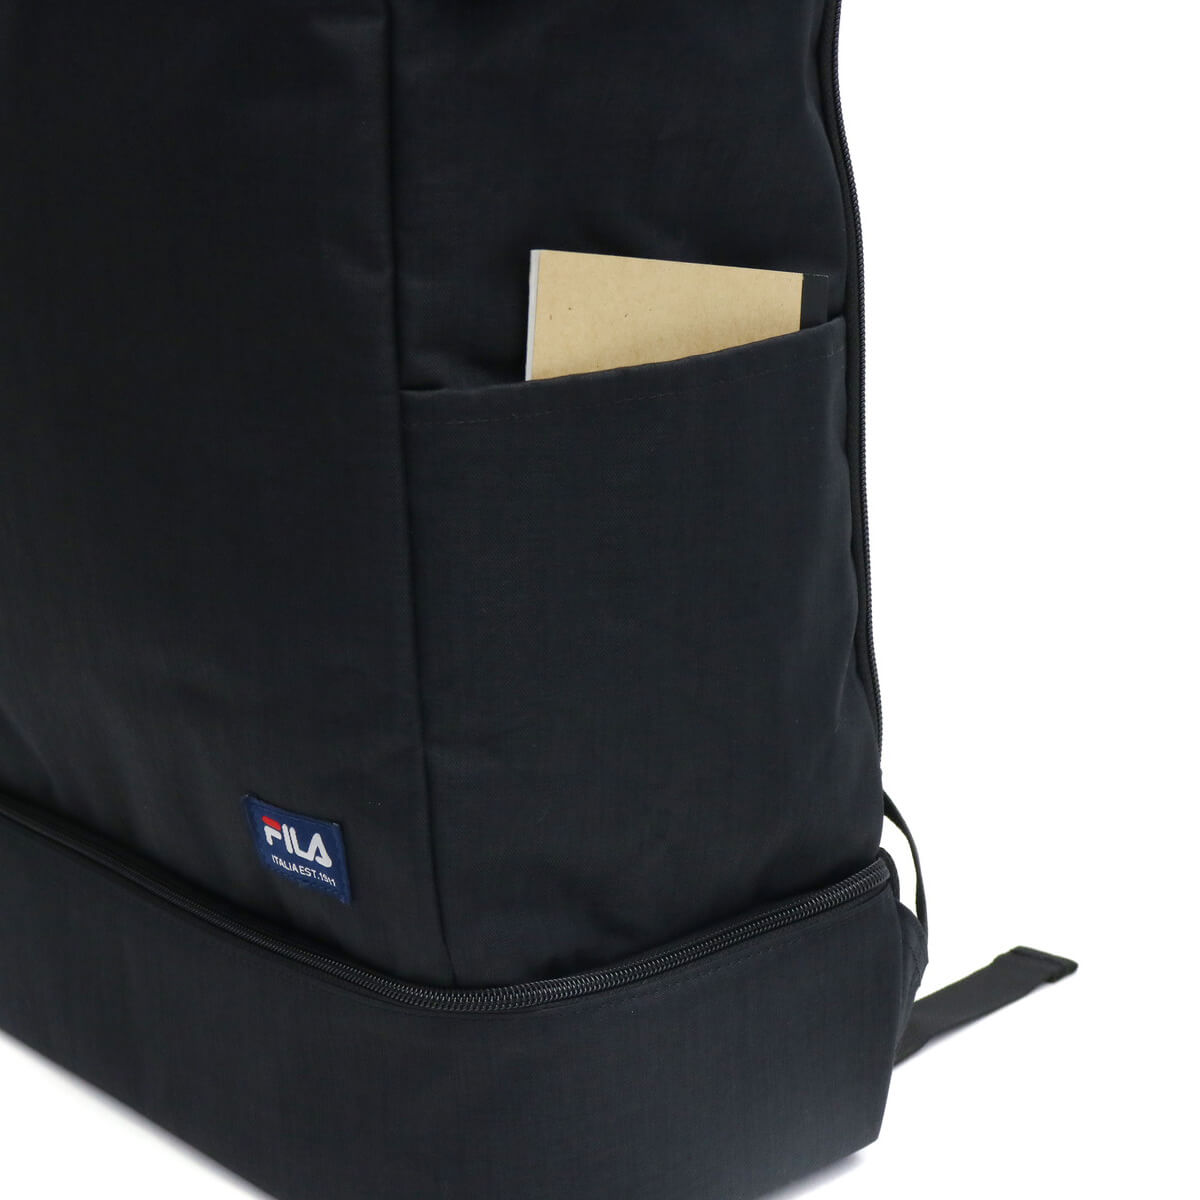 FILA rucksack Primo square day pack 29L attending school club activities  schoolbag B4 PC storing men gap Dis man and woman combined use junior high